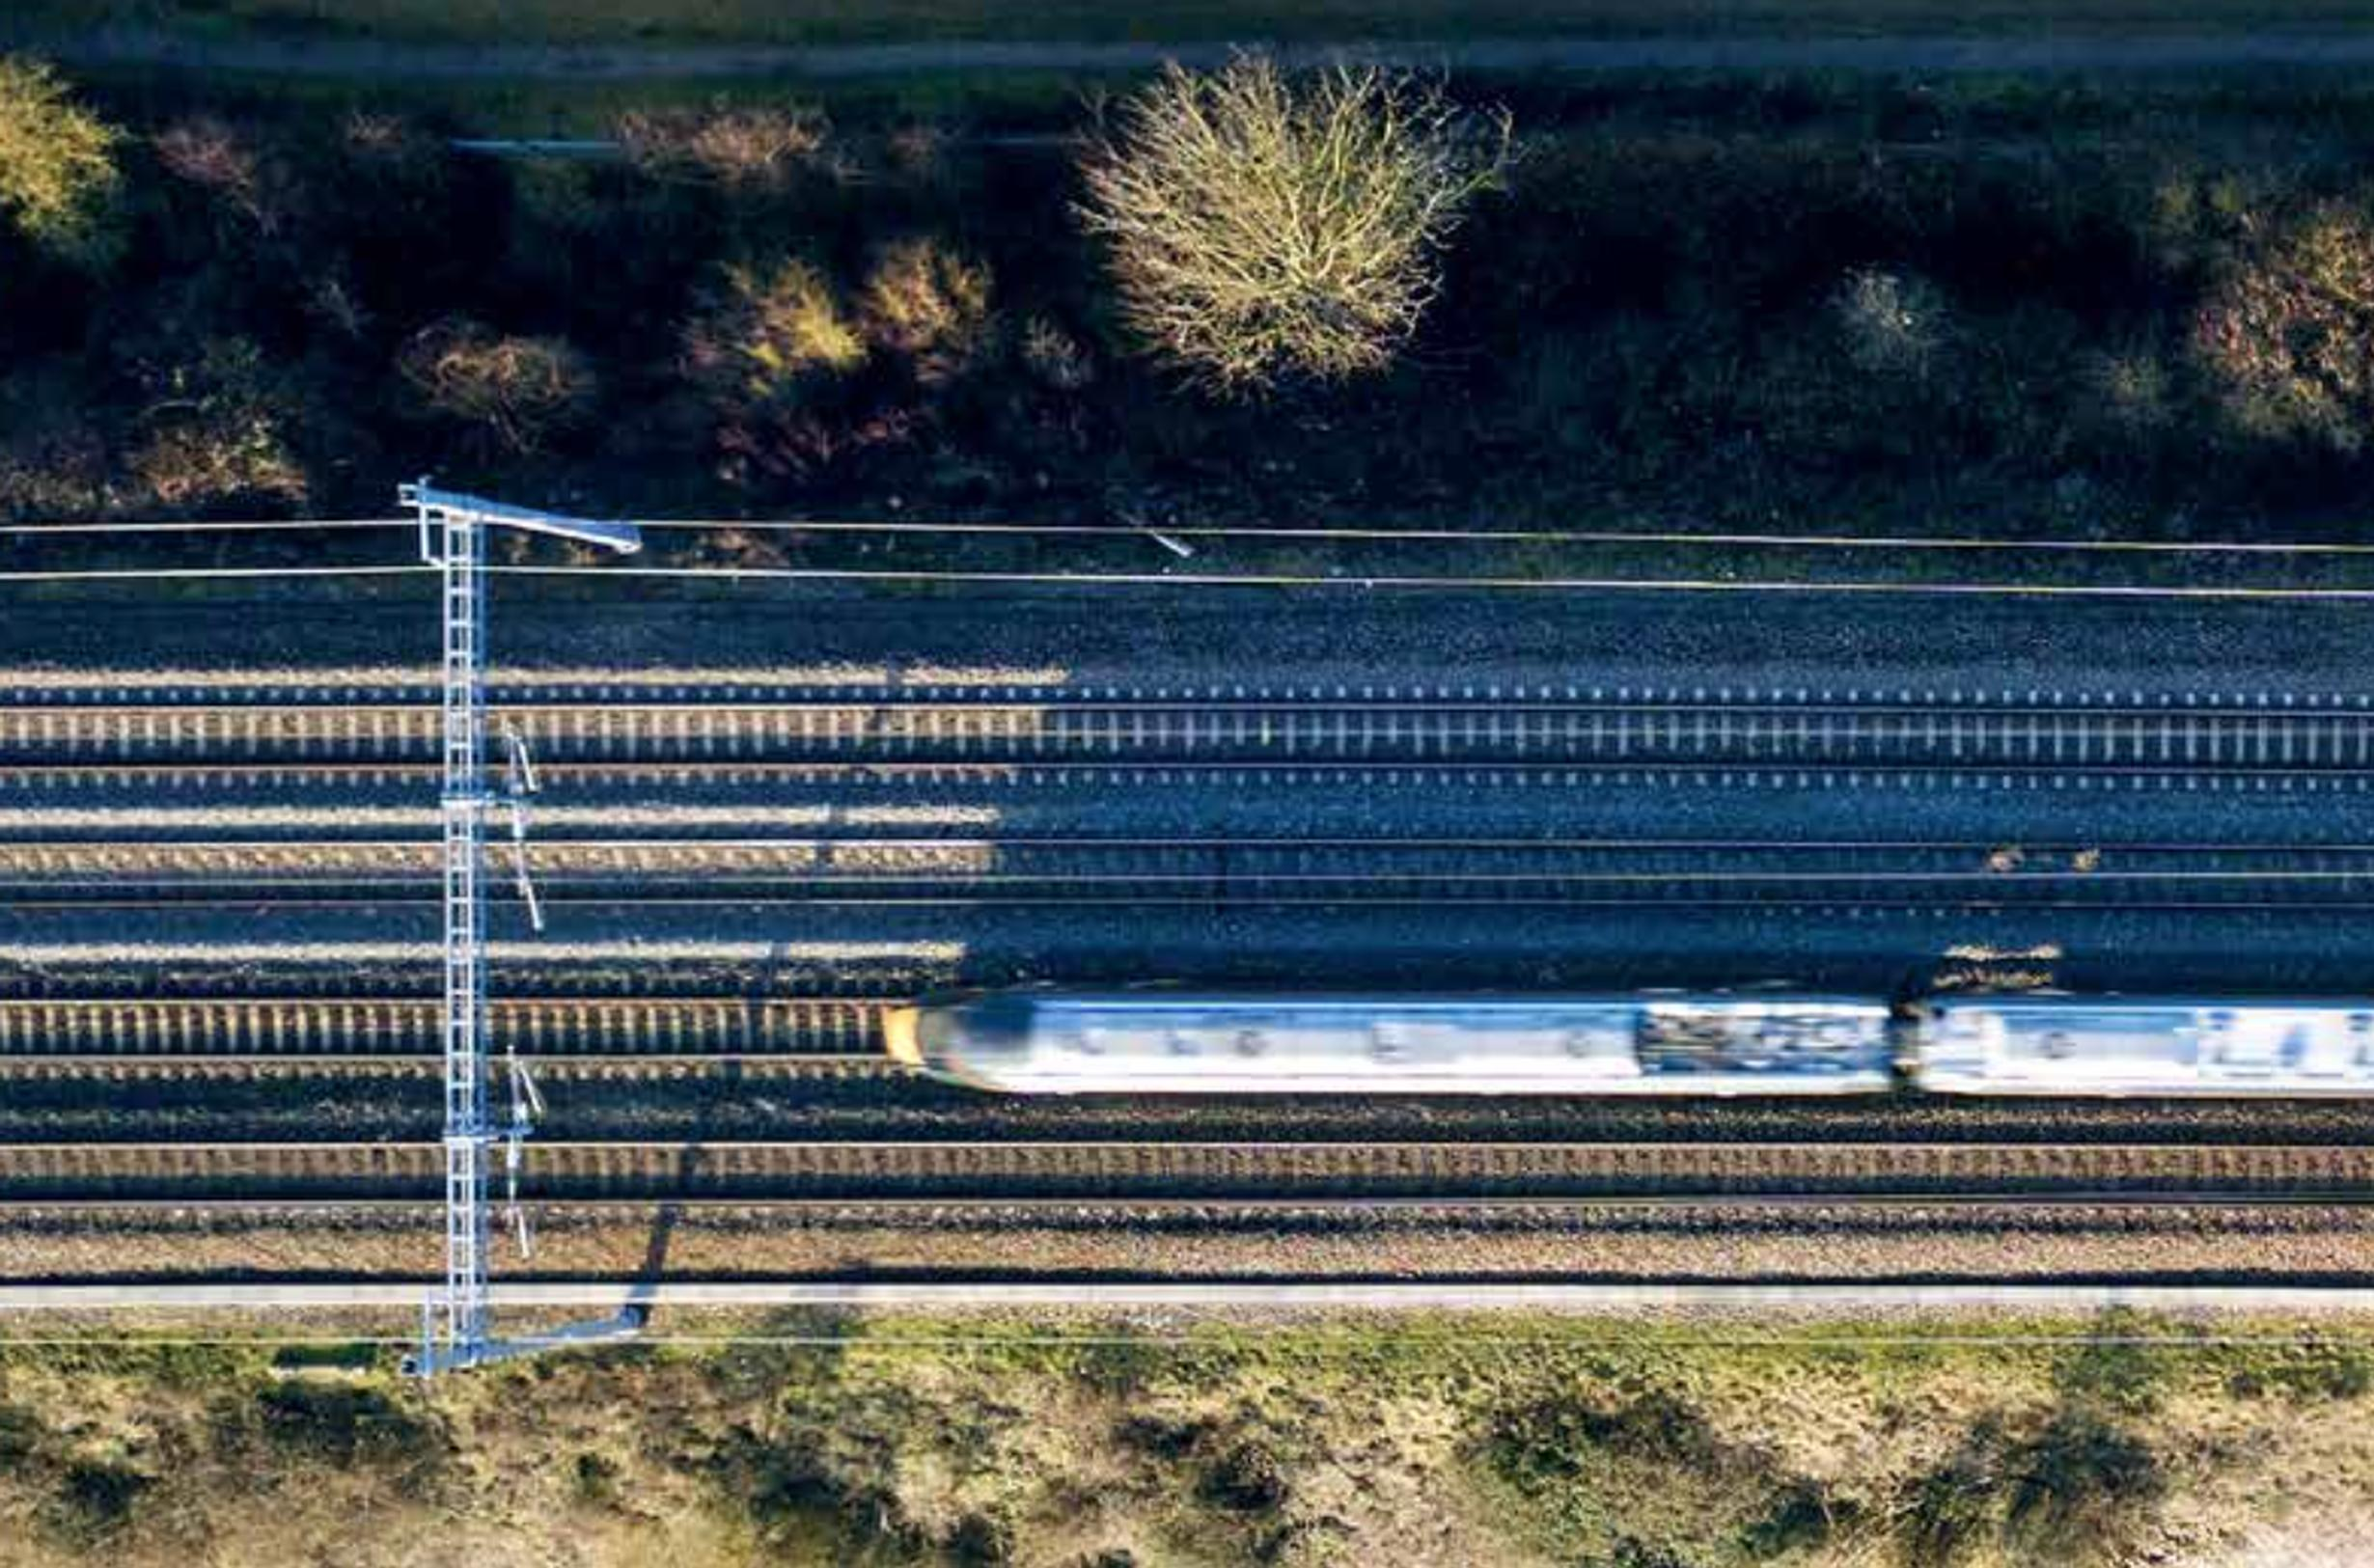 According to Network Rail, to decarbonise the network, 13,000 single-track kilometres – or around 450km a year – of track will need to be electrified by 2050 in order to achieve net zero, yet from 2019-2020 only 251km was electrified